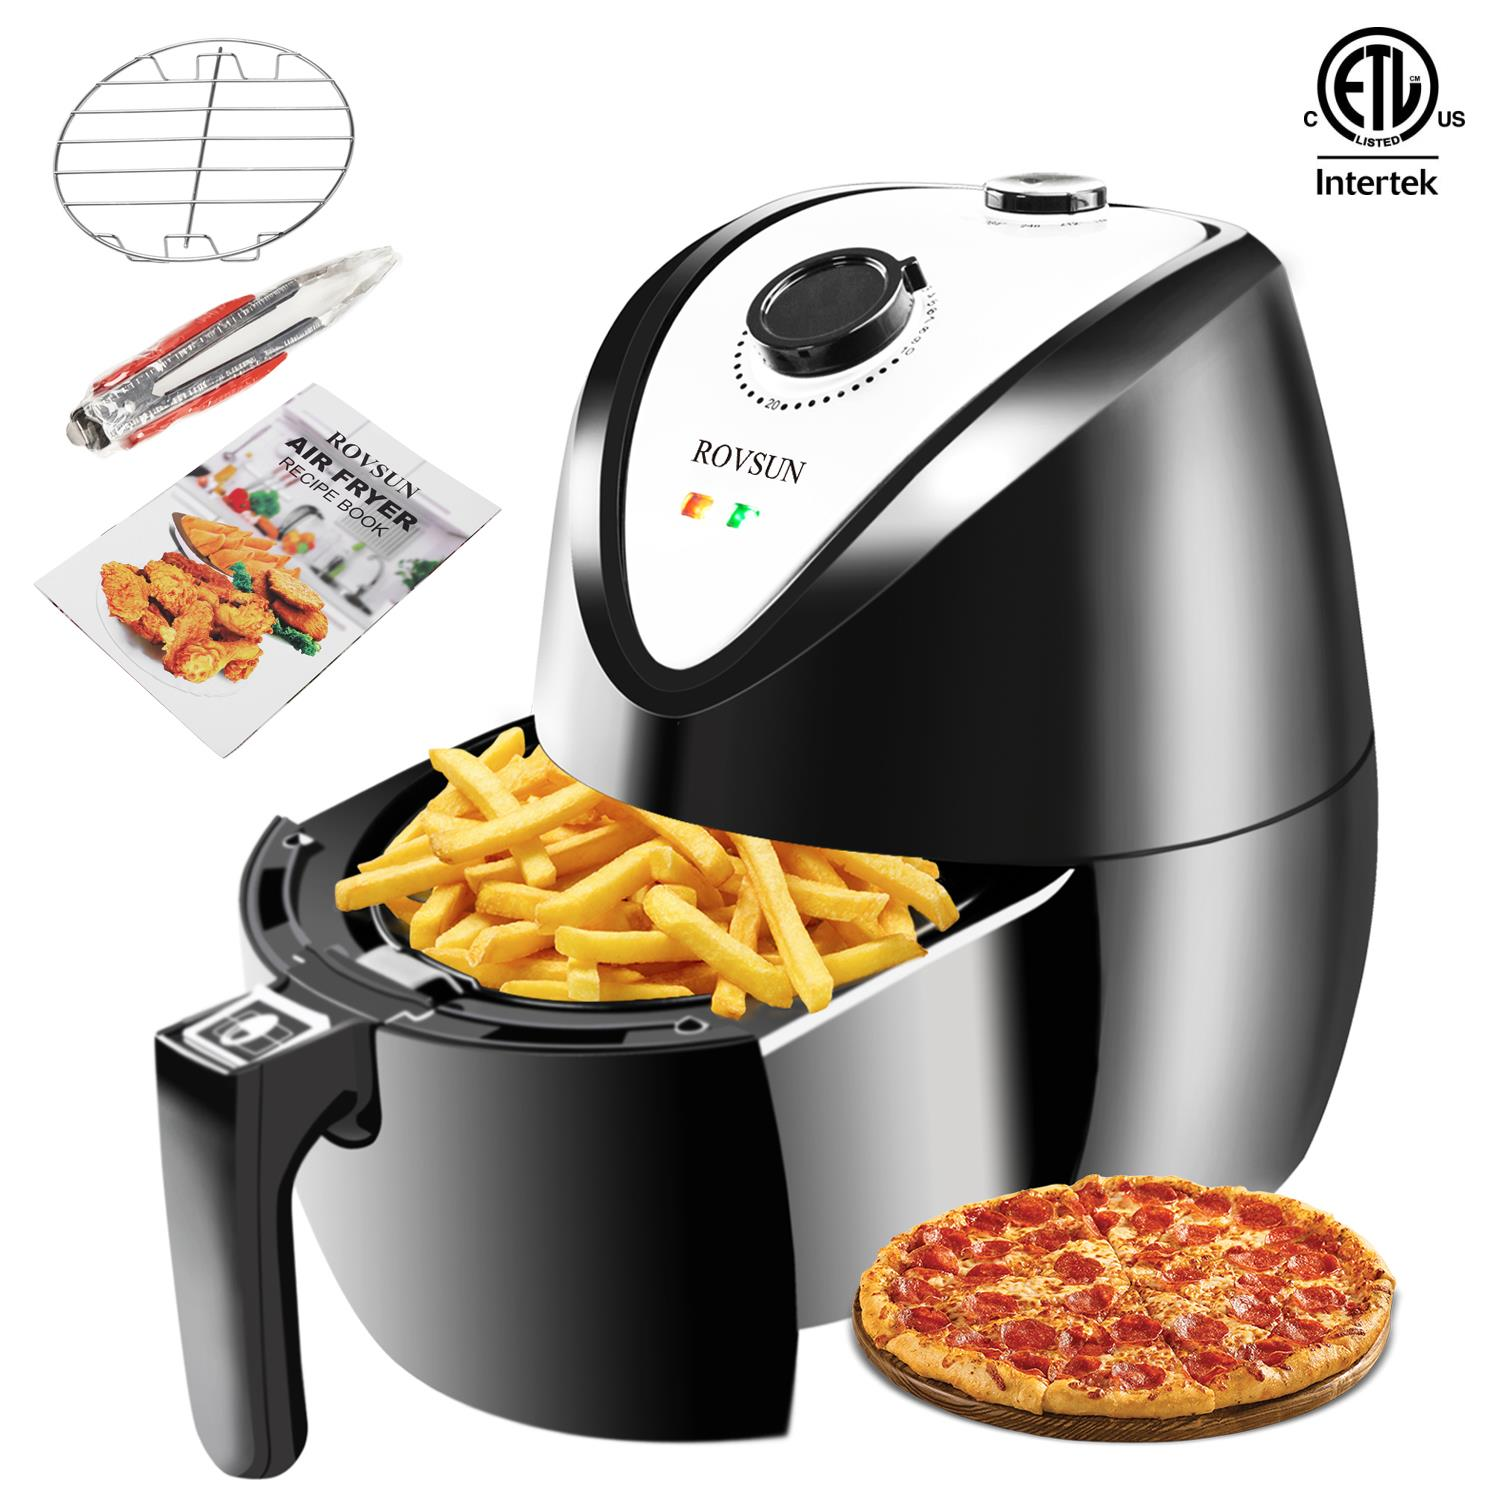 Ktaxon 1500W Electric Air Fryer Multifunction Timer & Temperature Control Healthy